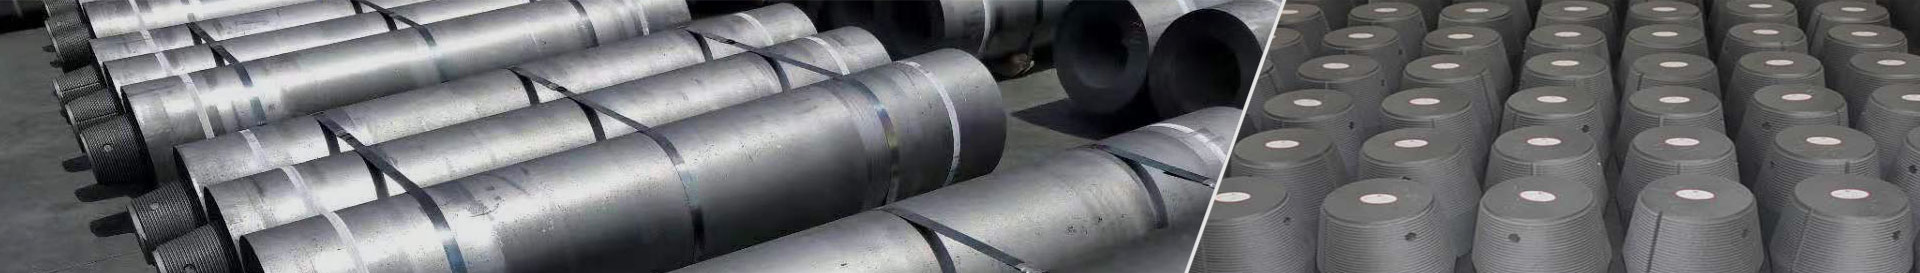 Graphite Electrode Blocks